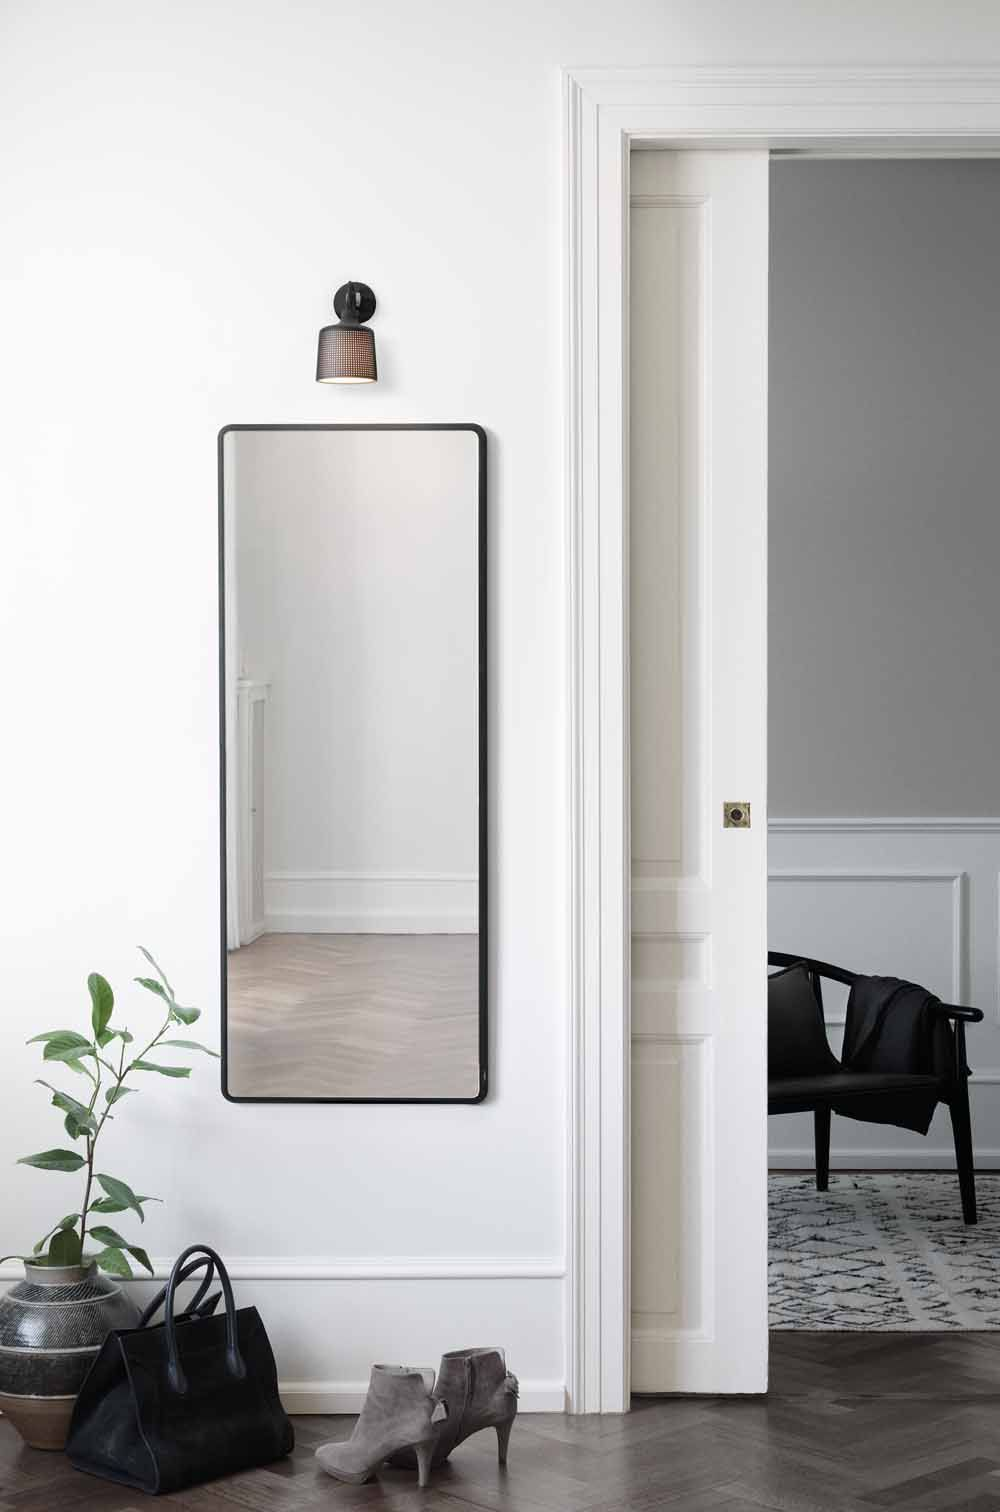 Vipp unveil a new lamp series bathroom designs lights and interiors